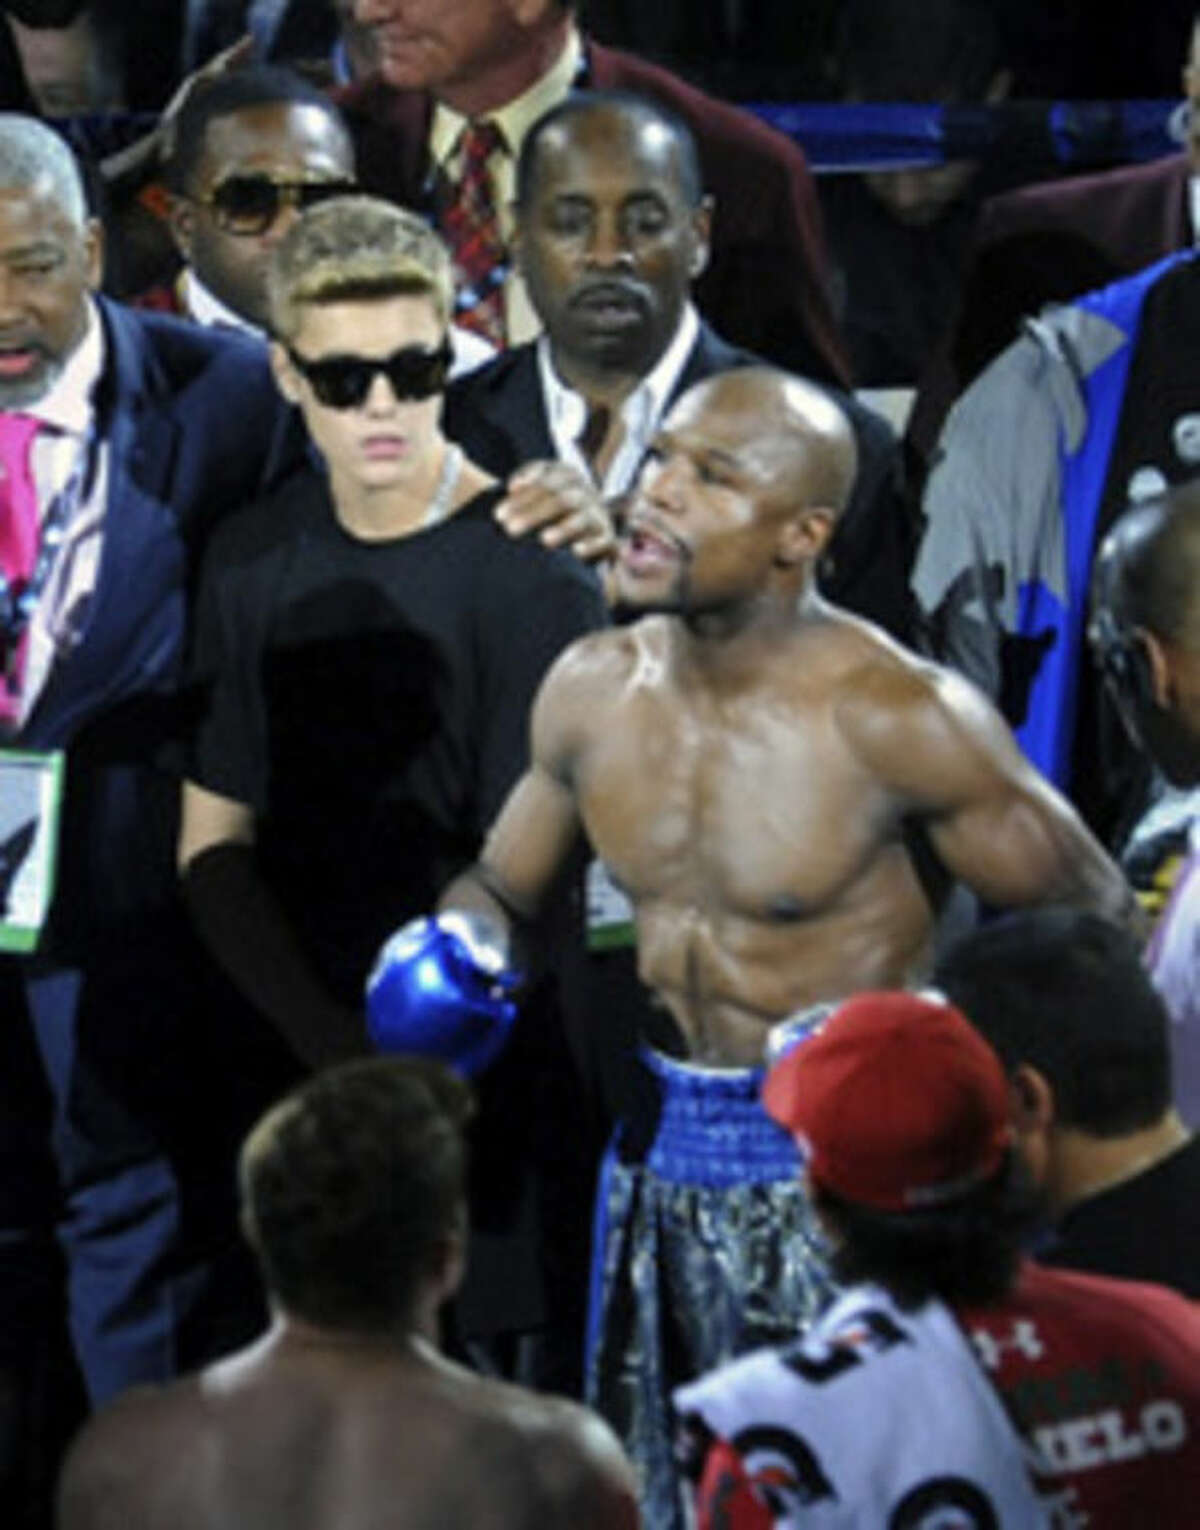 In this photo provided by the Las Vegas News Bureau, Justin Bieber stands with Floyd Mayweather Jr. in the ring prior to Mayweather?'s super welterweight title fight against ?